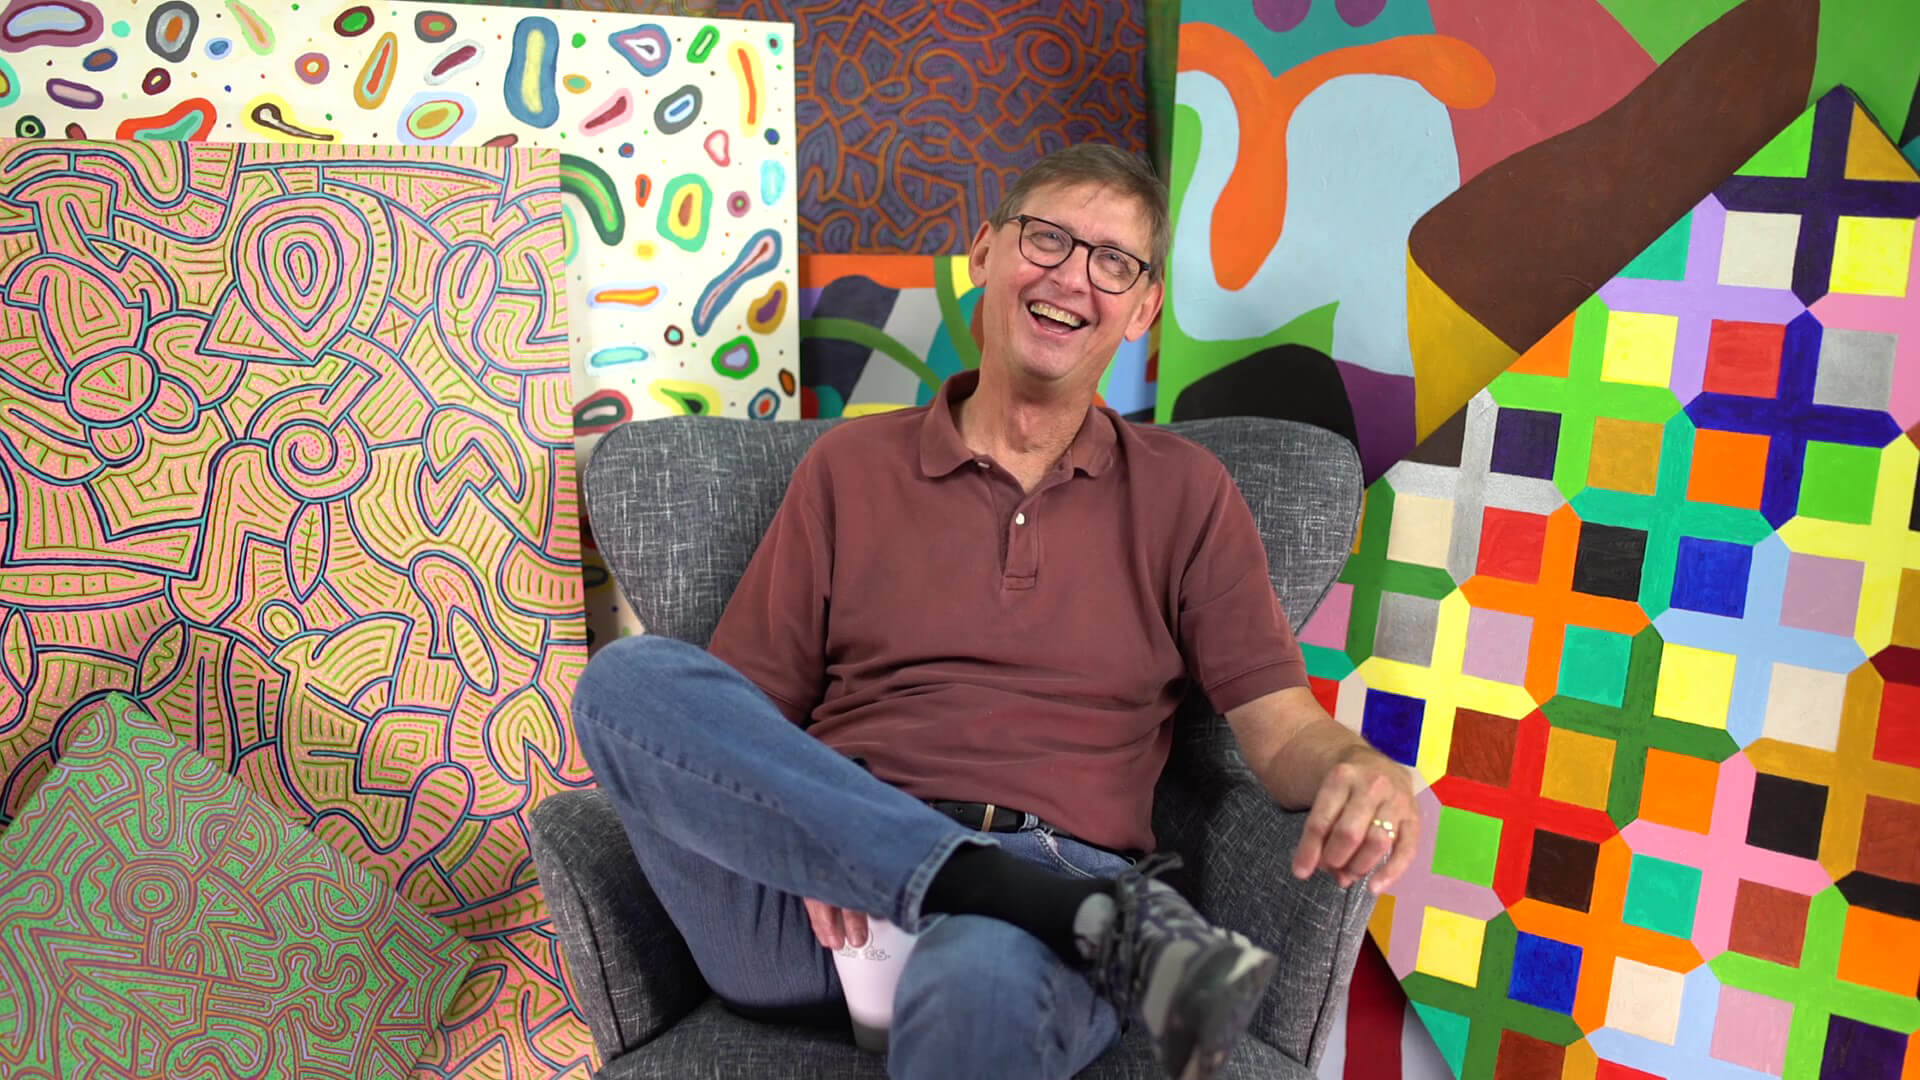 Earl Sherman sits in a chair among his art and laughs.